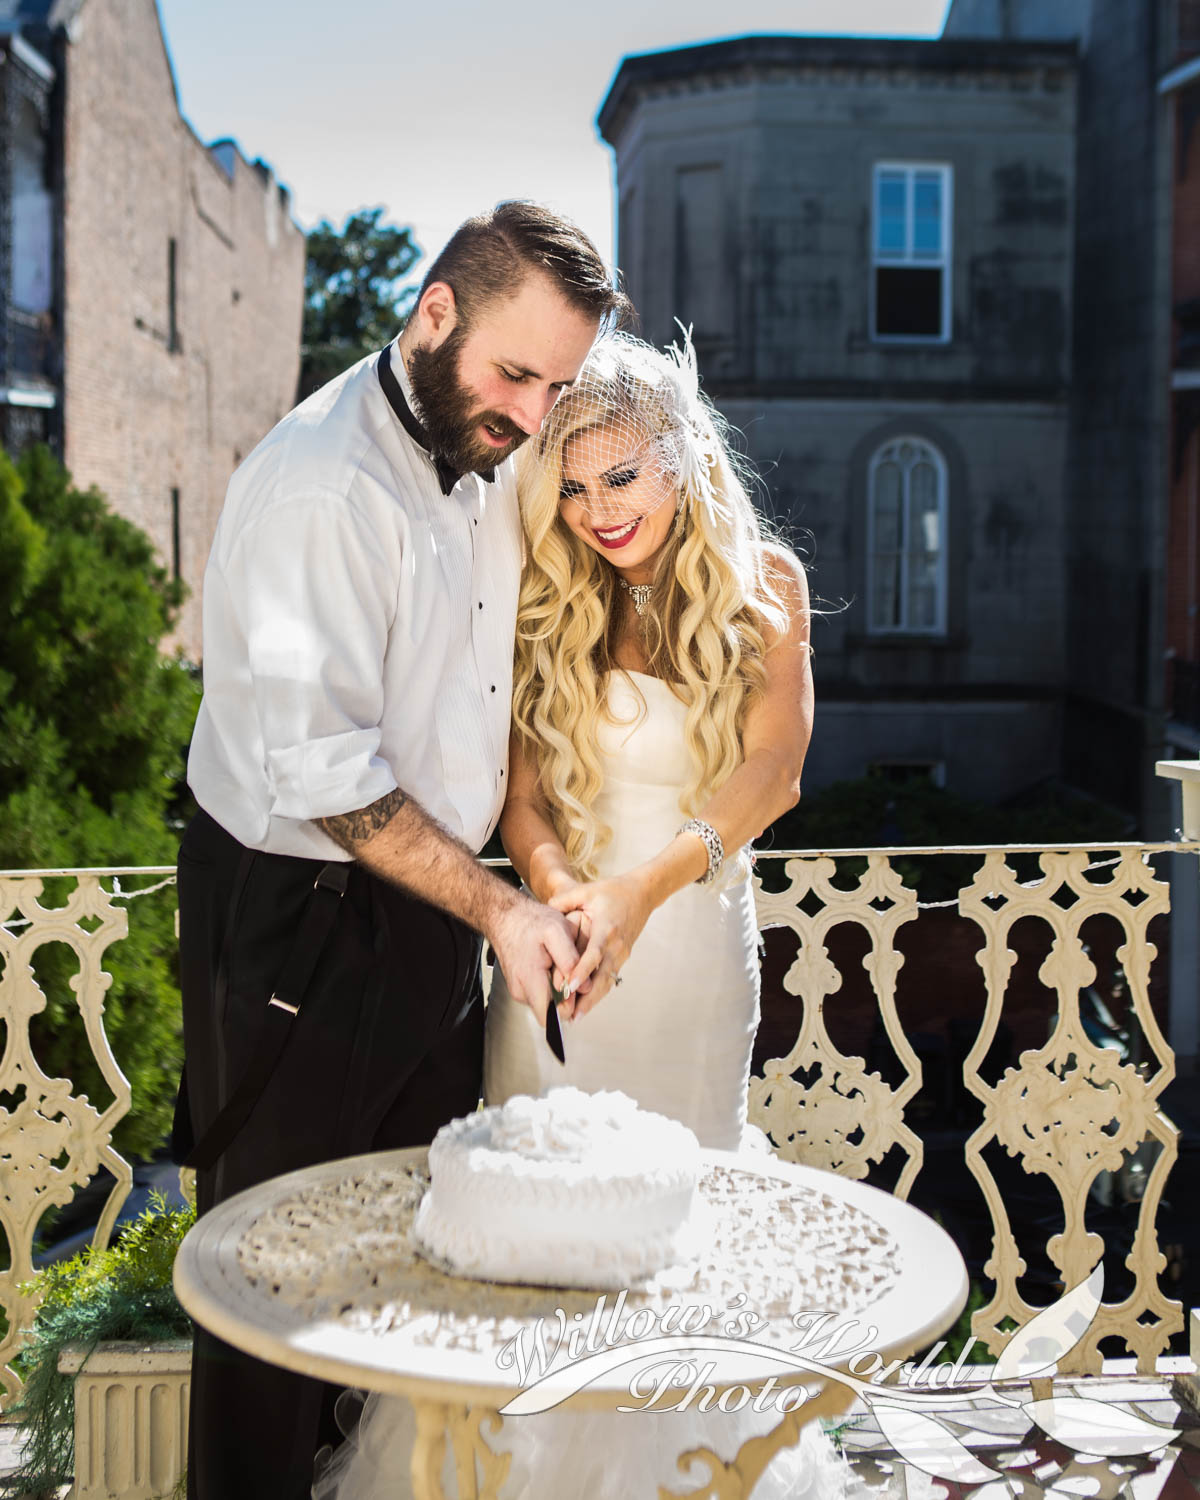 Cutting the cake on the lovely (and spacious) balcony of the Cornstalk Hotel...